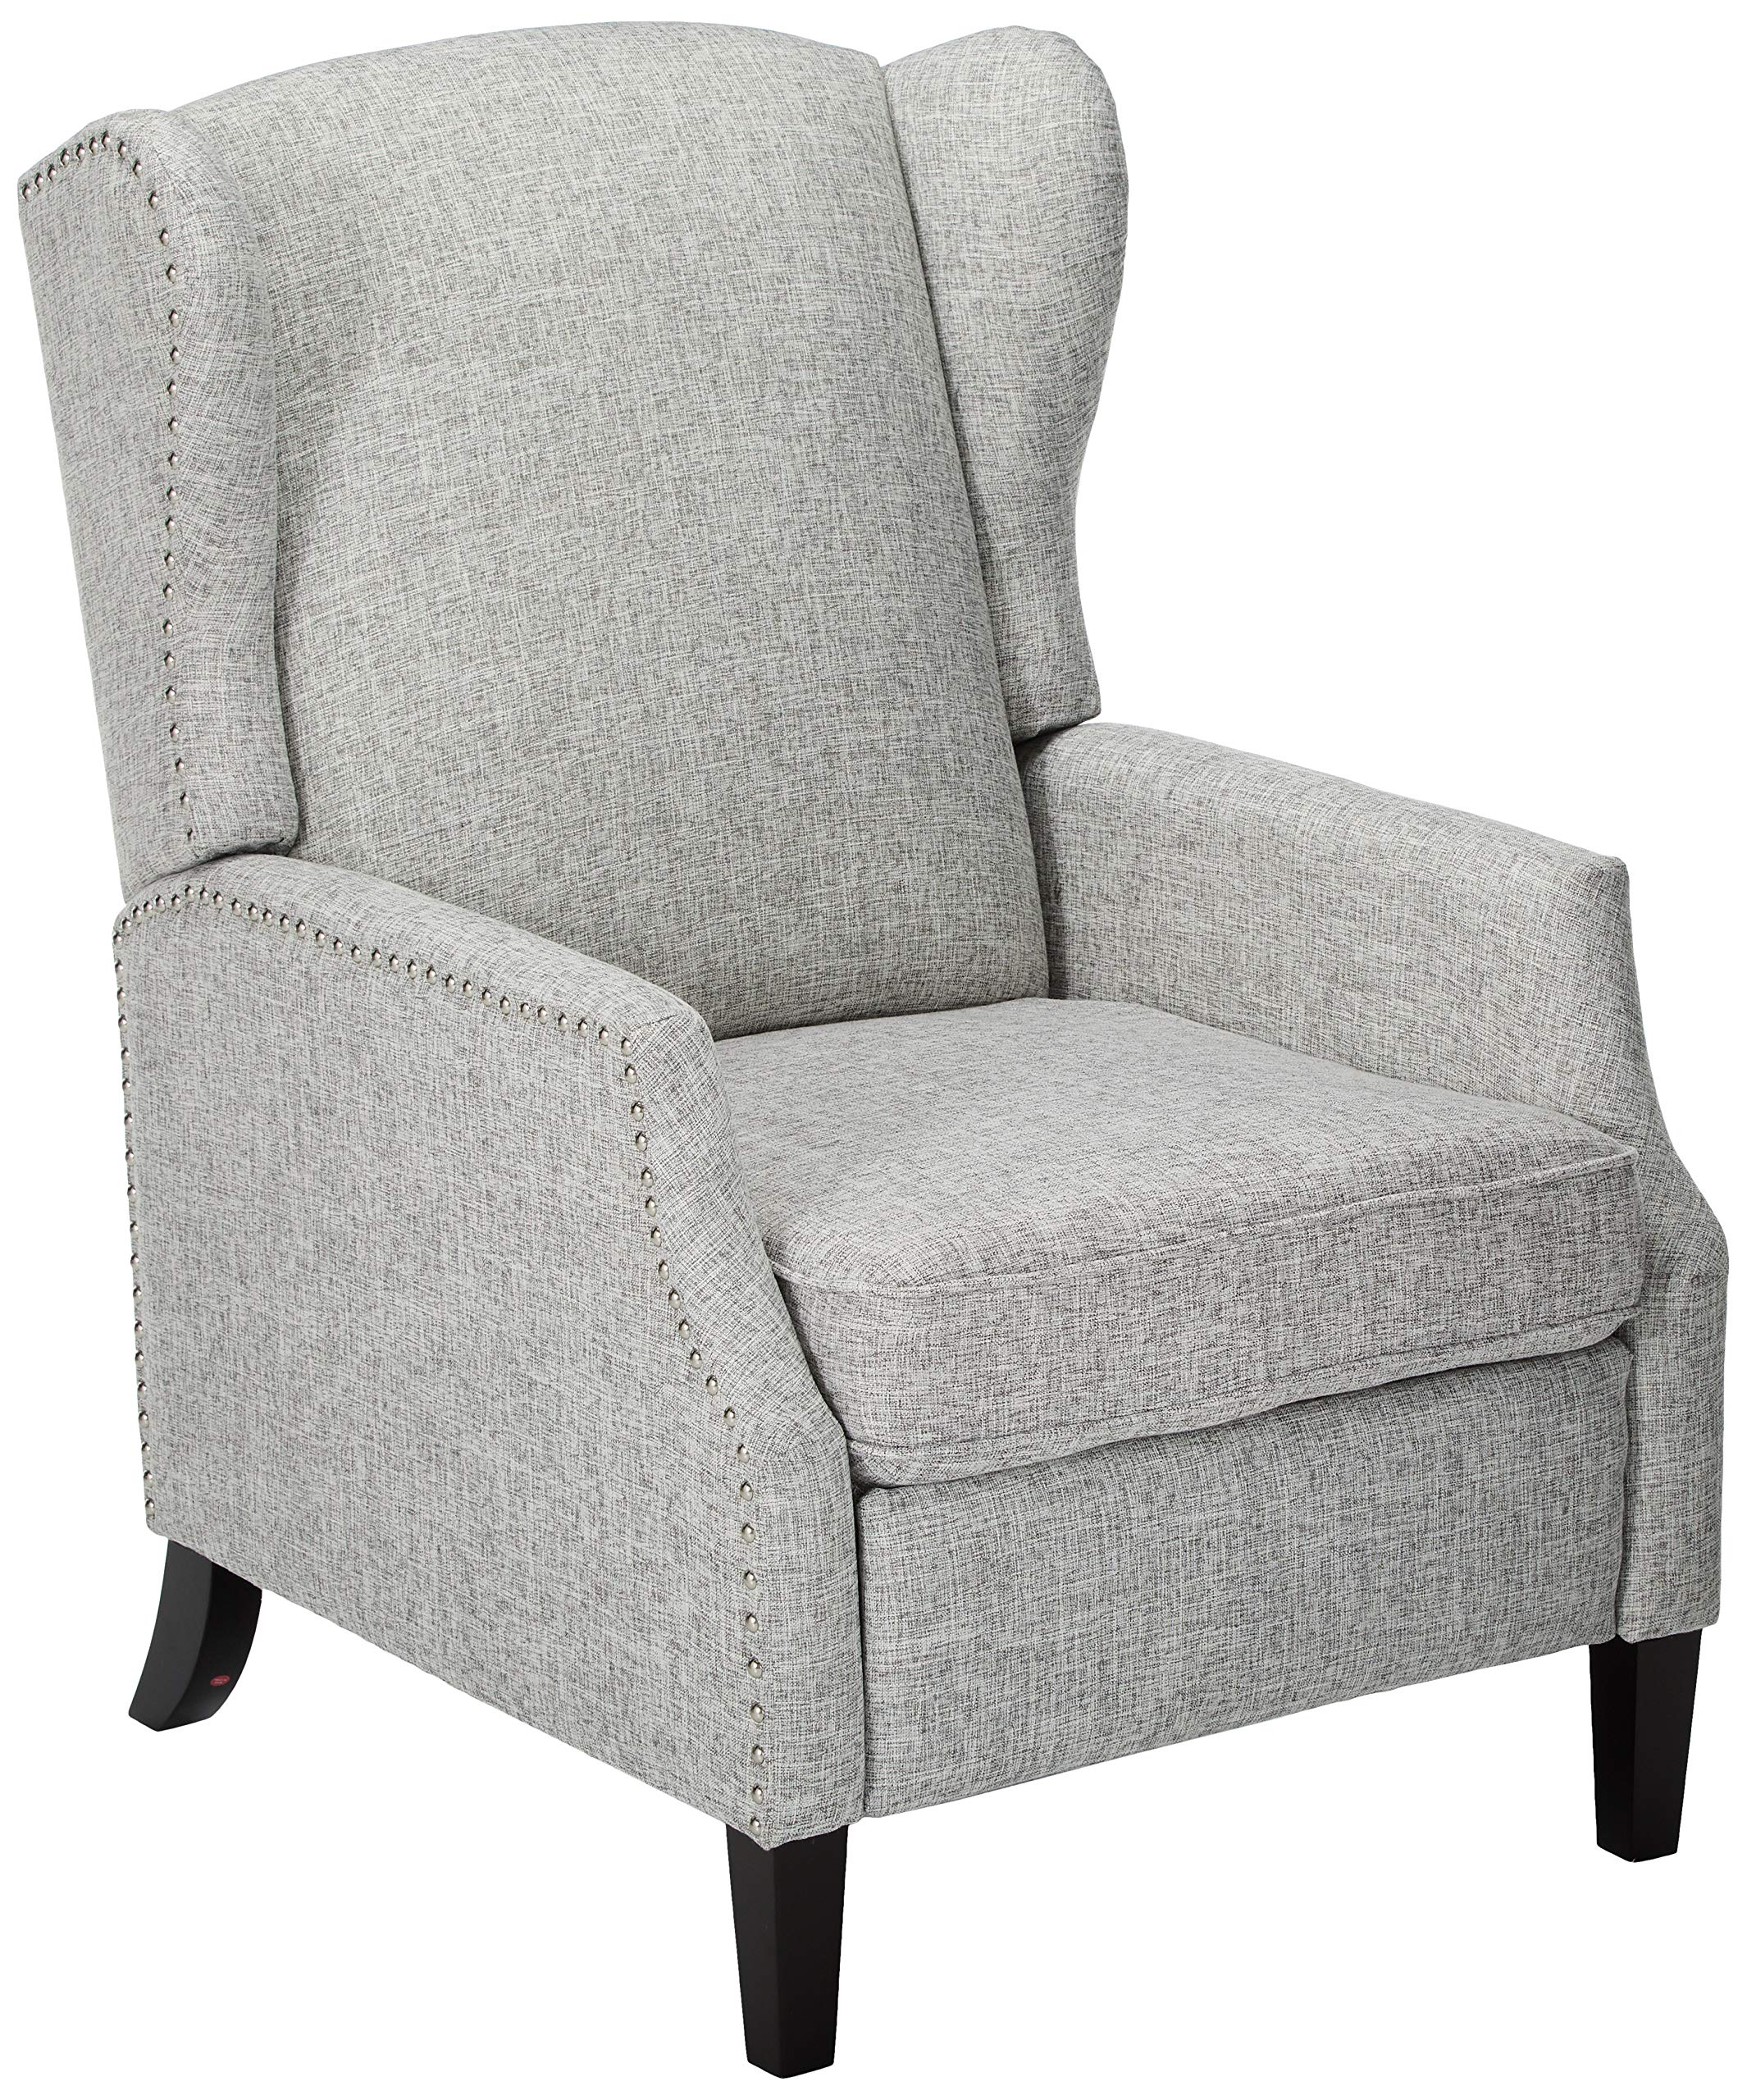 Christopher Knight Home Wescott Traditional Fabric Recliner, Light Grey Tweed